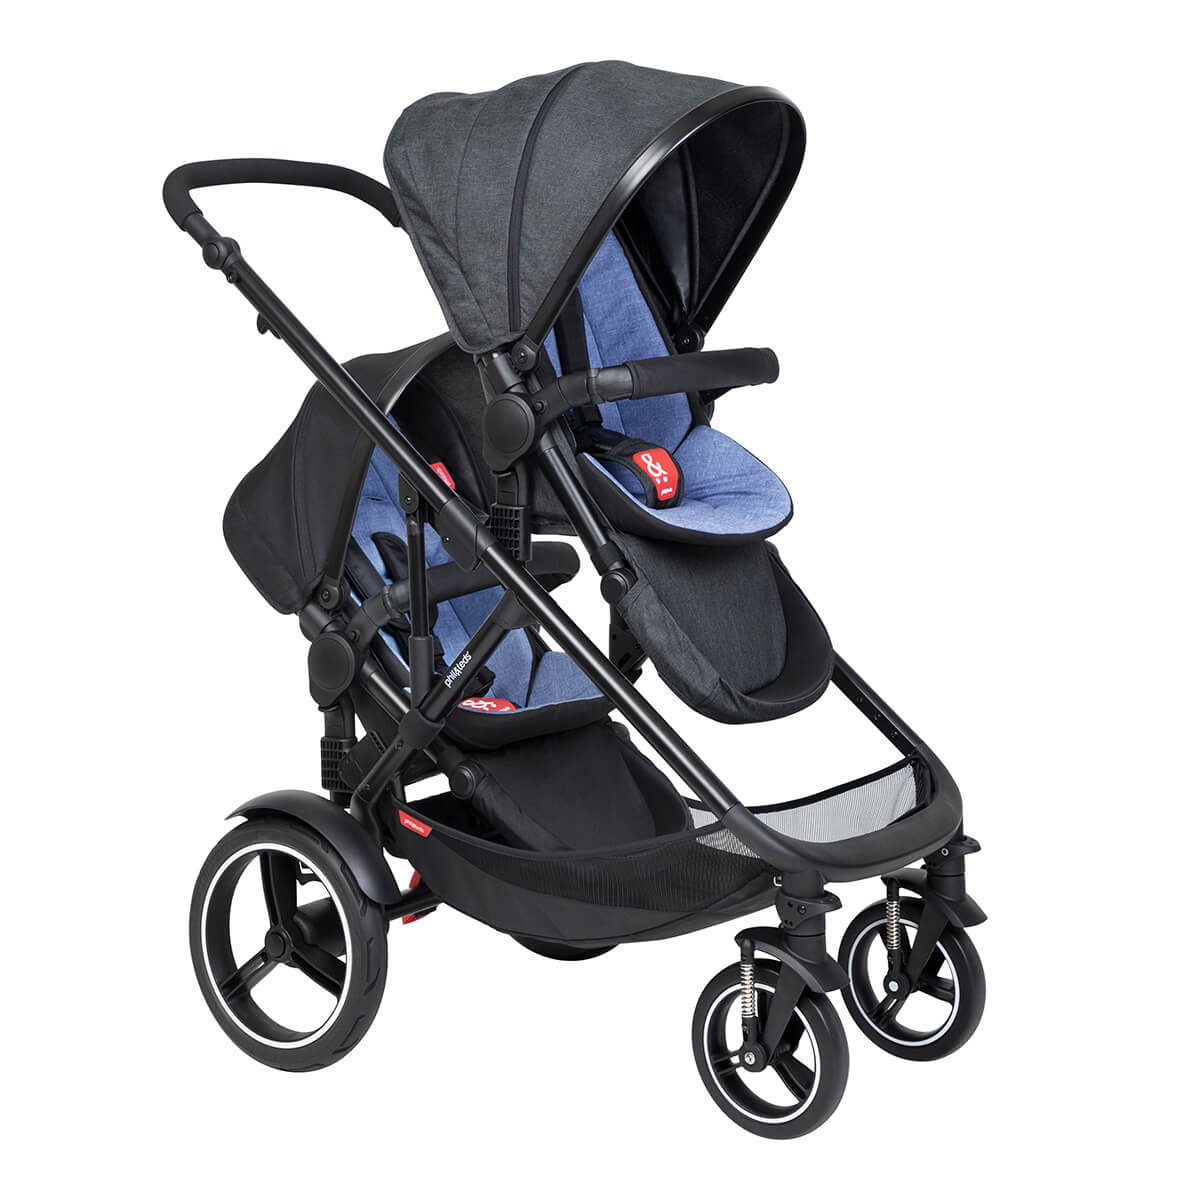 https://cdn.accentuate.io/4390319587424/19440099852472/philteds-voyager-inline-buggy-with-double-kit-in-rear-in-sky-blue-colour-v1626488673633.jpg?1200x1200